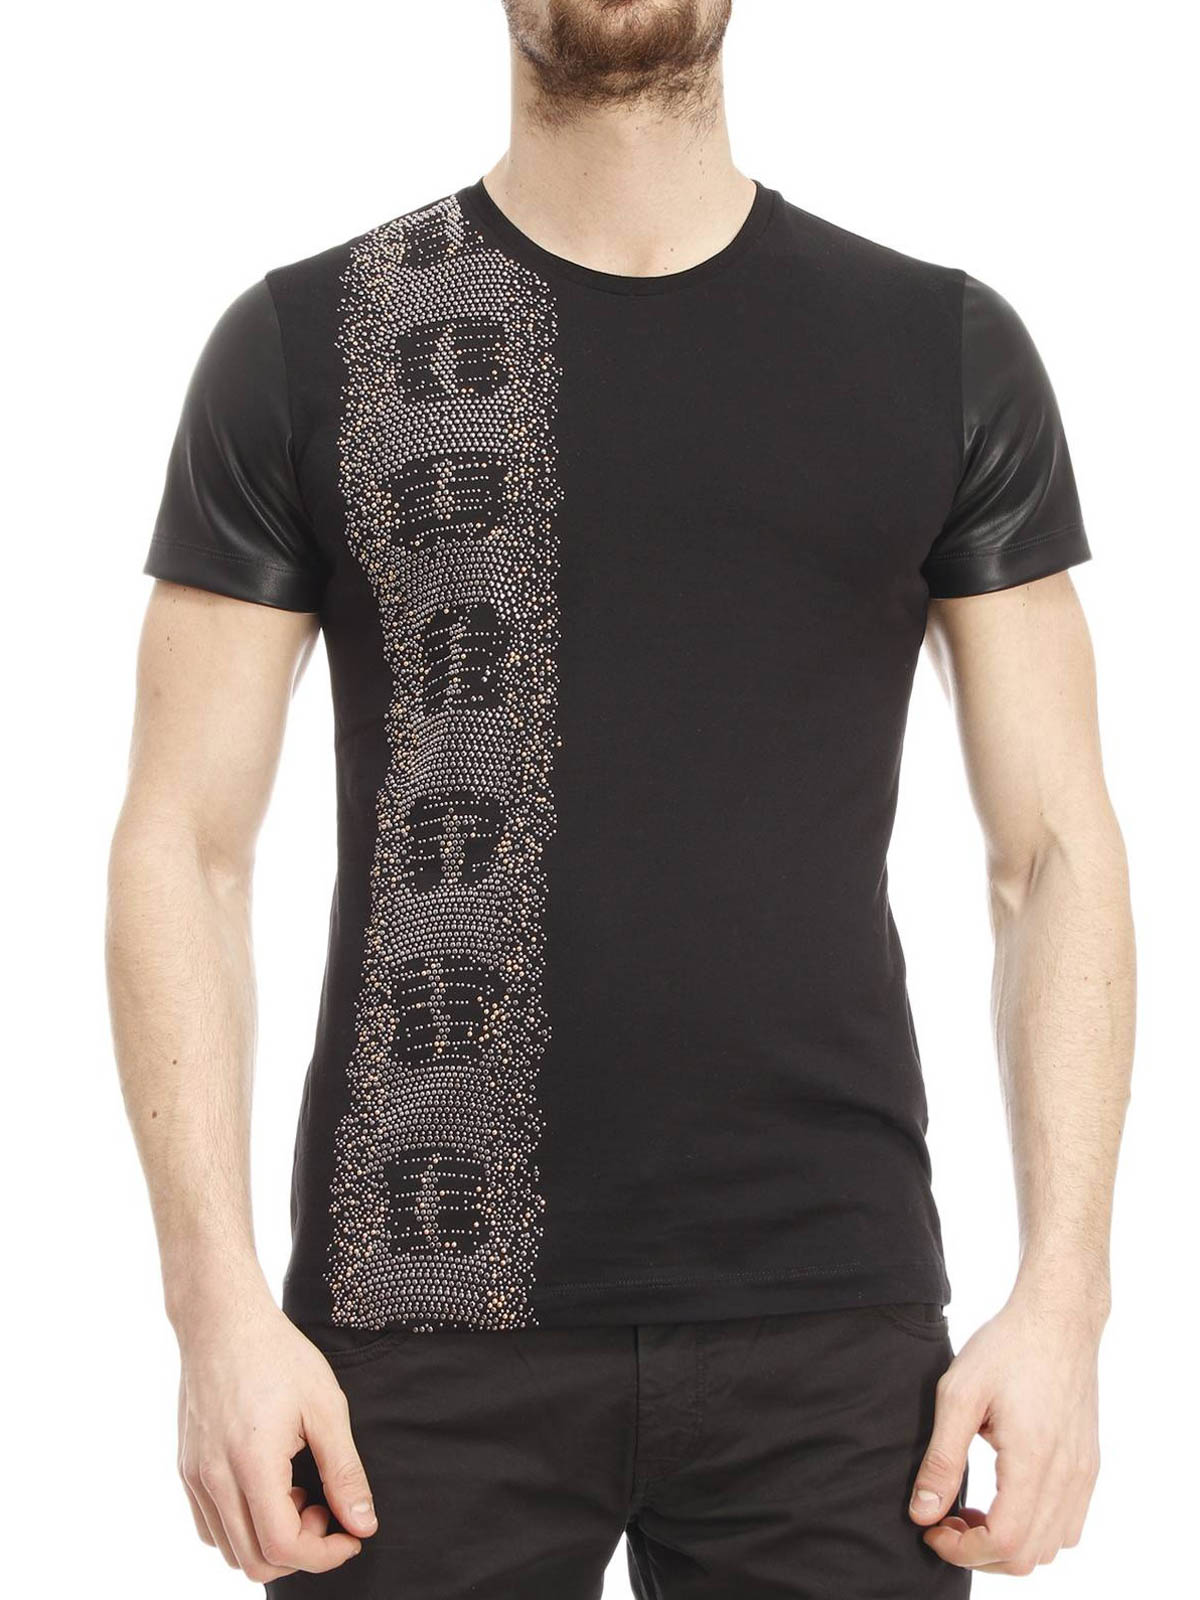 JUST CAVALLI Premium soft cotton black colour regular fit Lion print Just Cavalli branding. Search. Home Men. Expand submenu Men Collapse submenu Men. All Jeans / Chinos Track Pants / Joggers Roberto Cavalli SO1GC T shirt. Regular price R 3, Size.